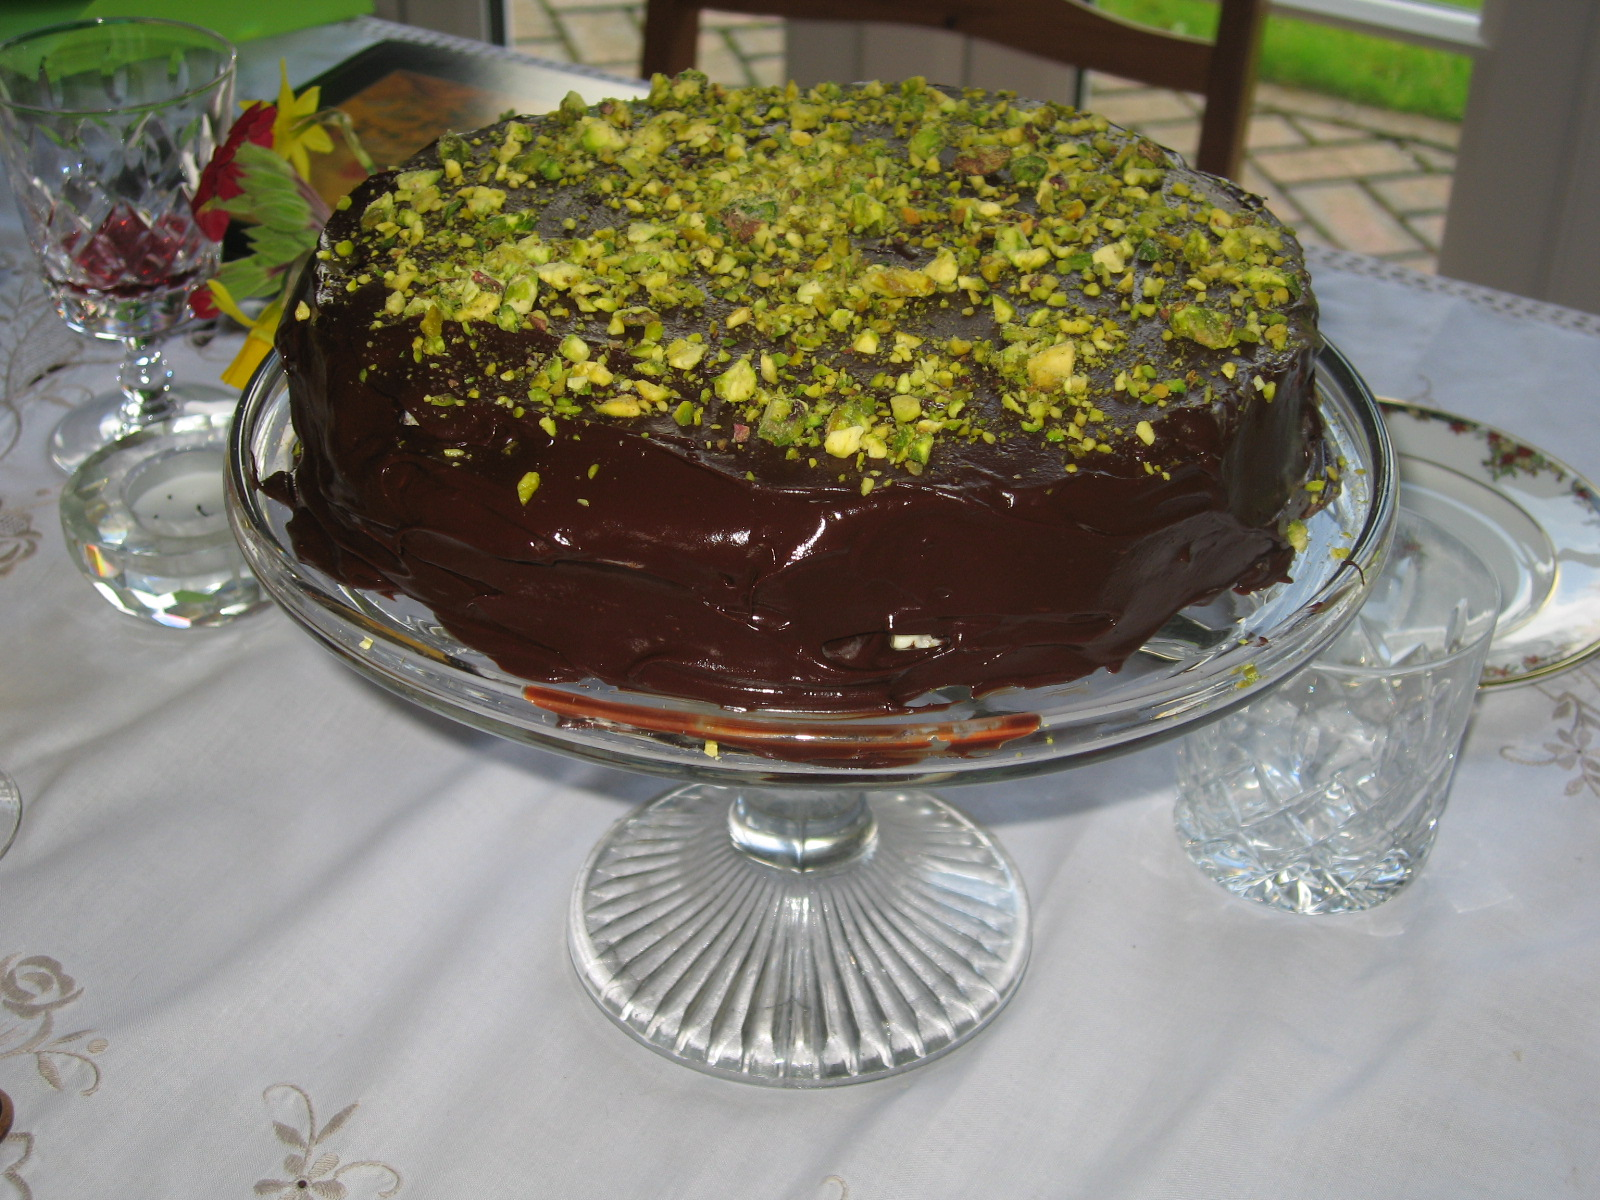 Pint Sized Confessions: 16. Chocolate Pistachio Cake